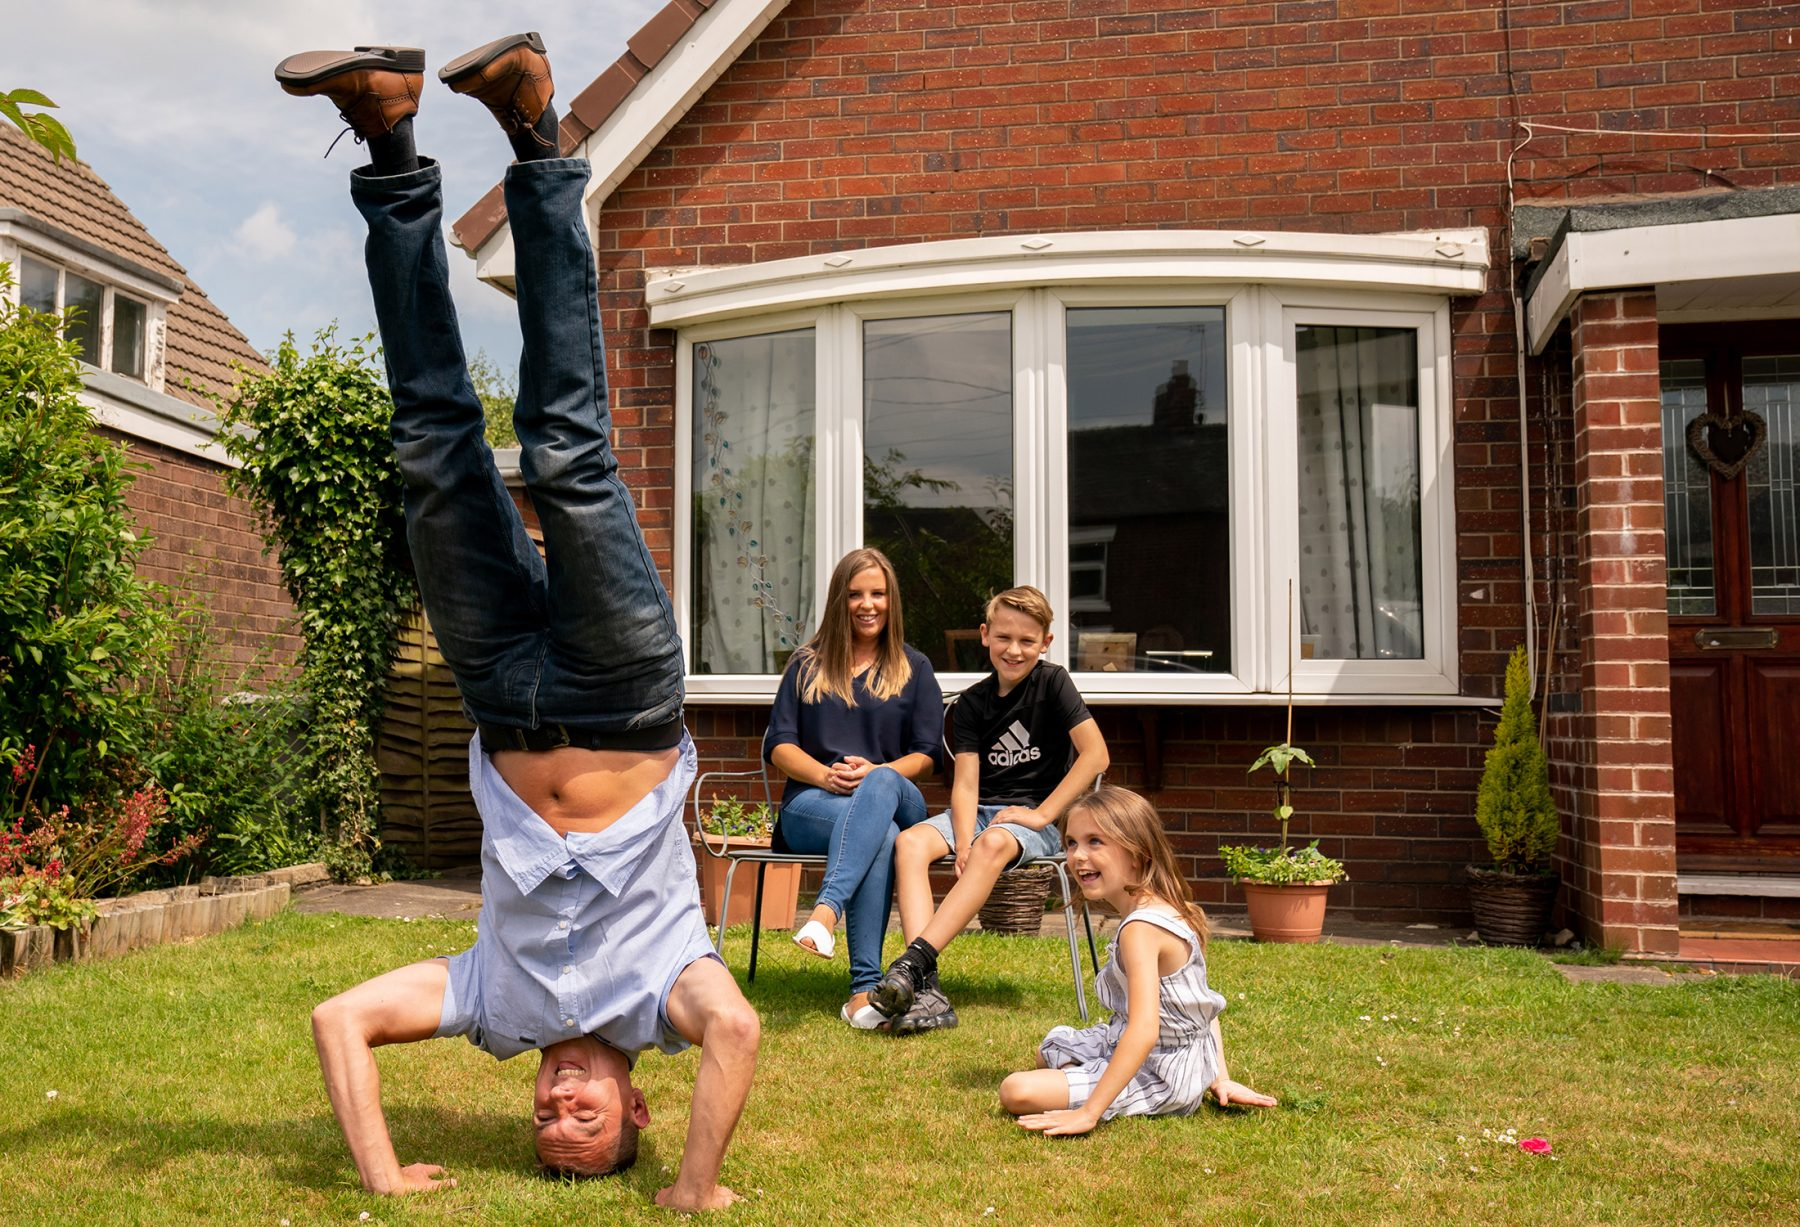 Family Photography in Stockport